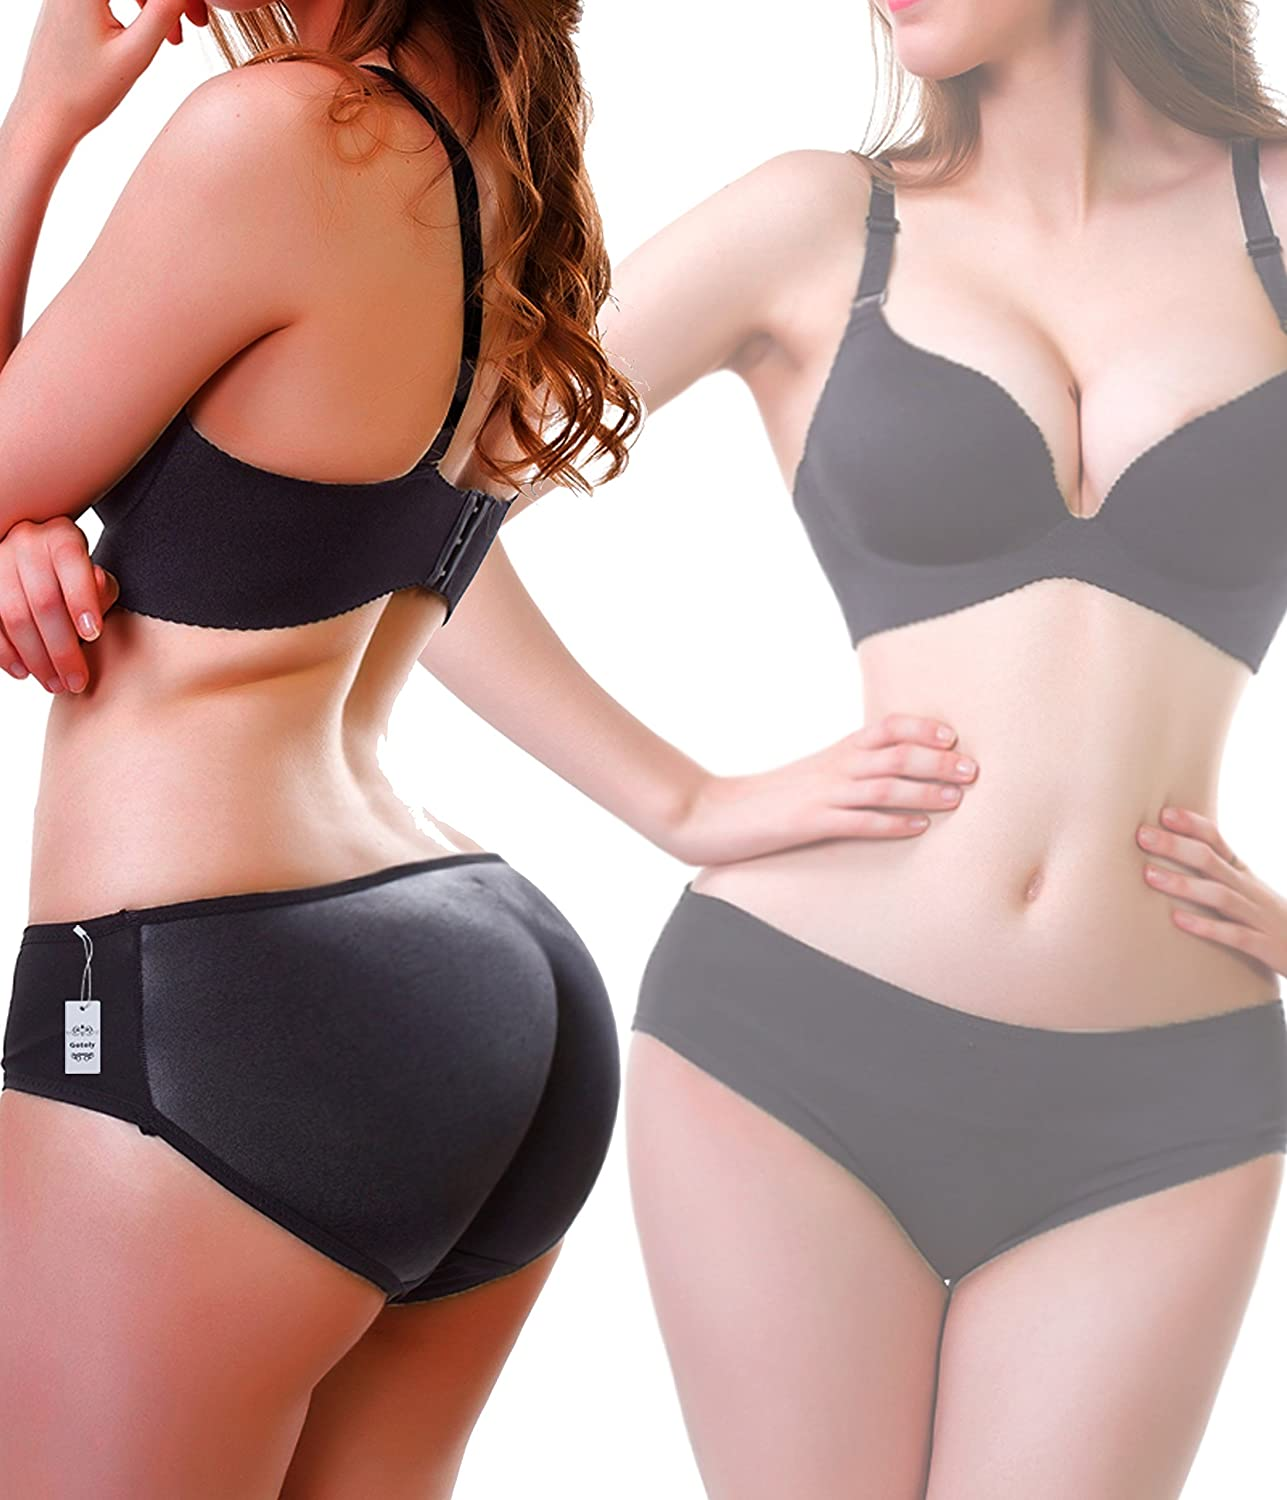 Gotoly Butt Lifter Padded Panty | Enhancing Body Shaper for Women | Seamless